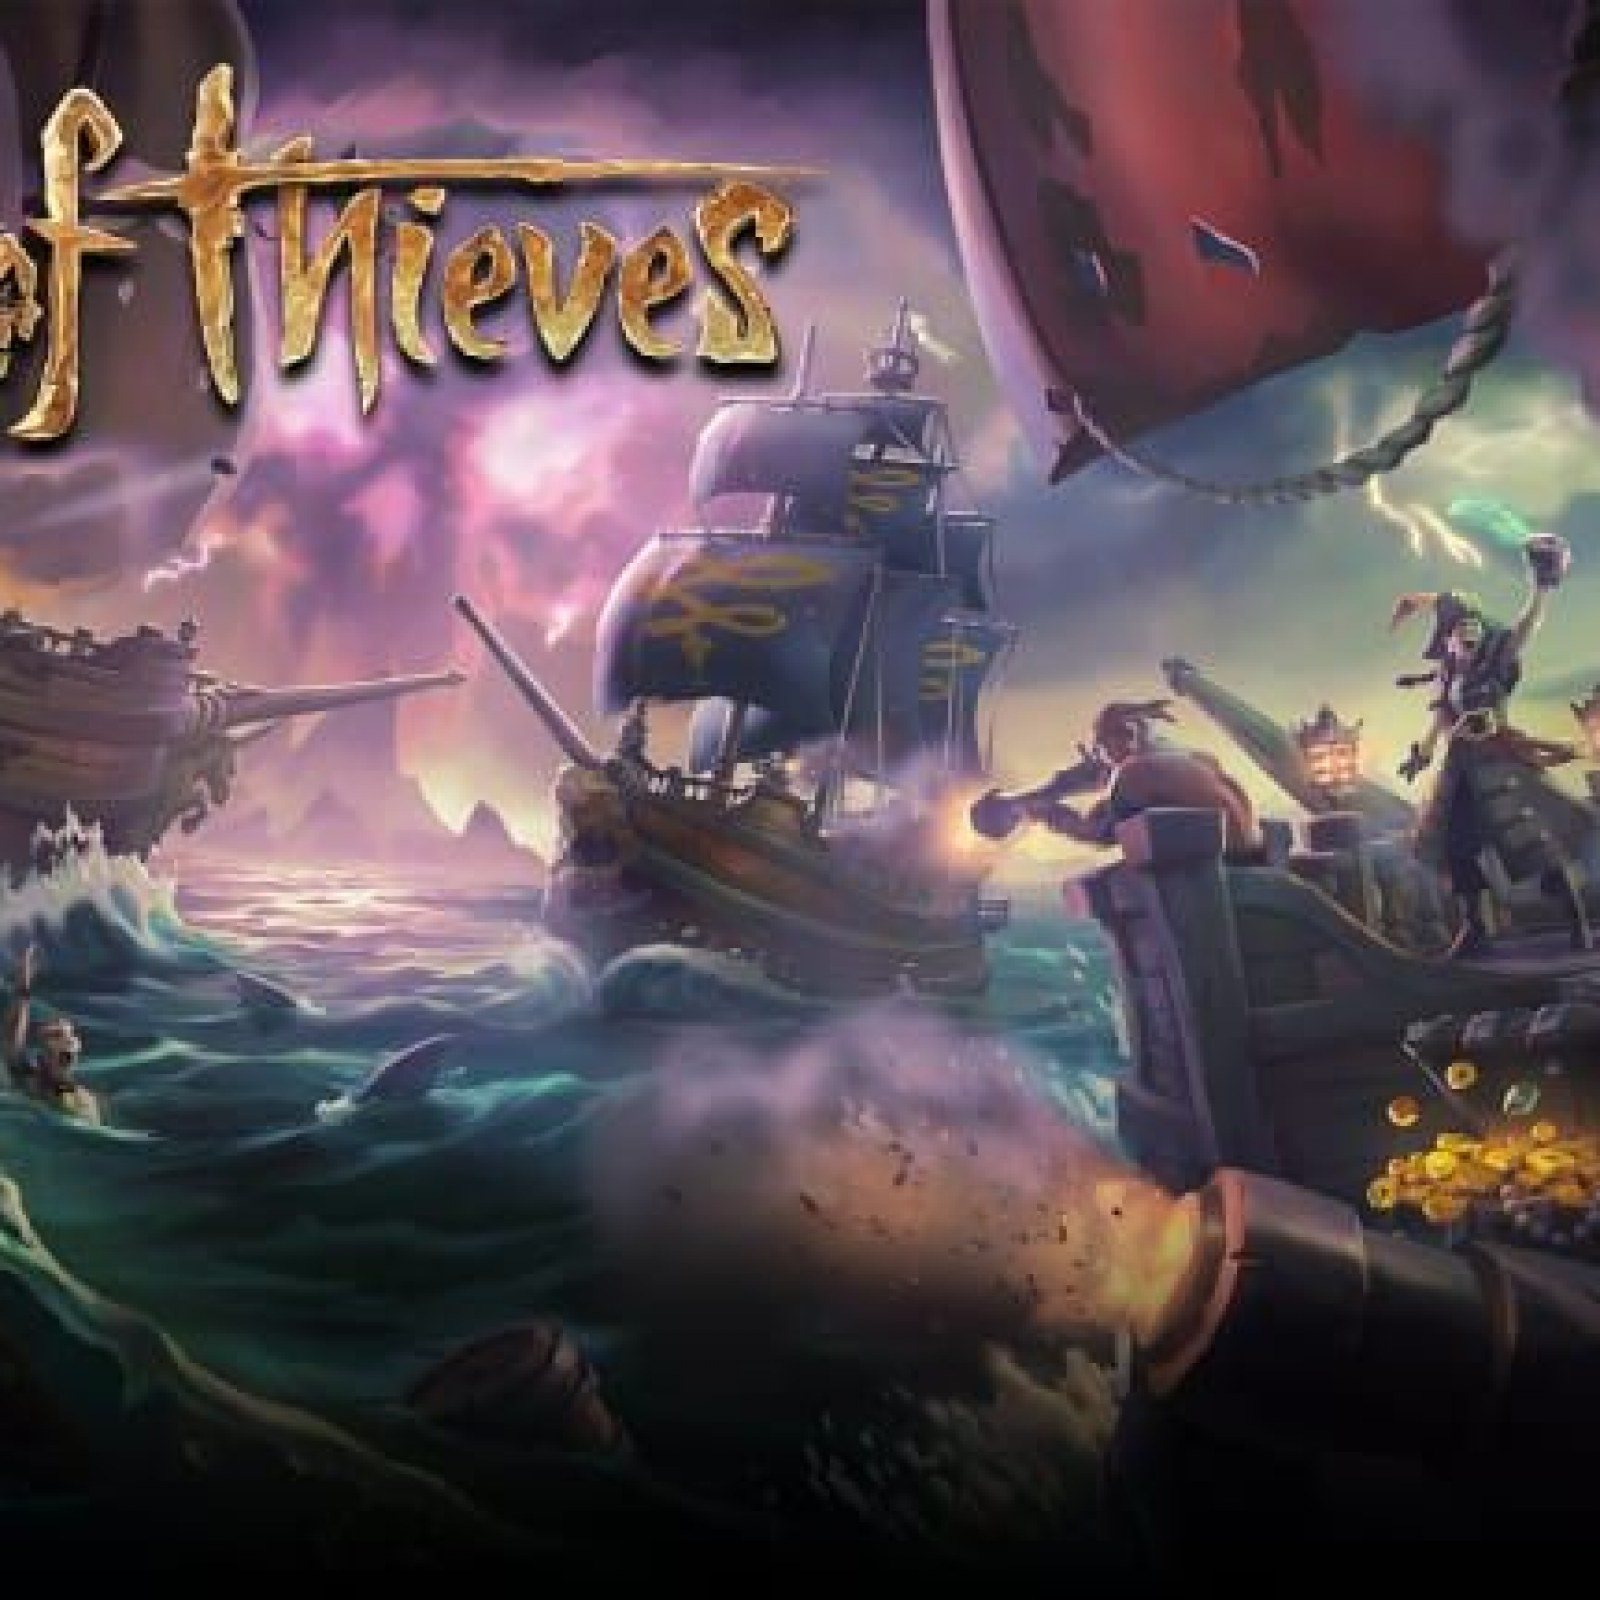 Sea of Thieves' Update 1 4 4 Patch Notes: New Mercenary